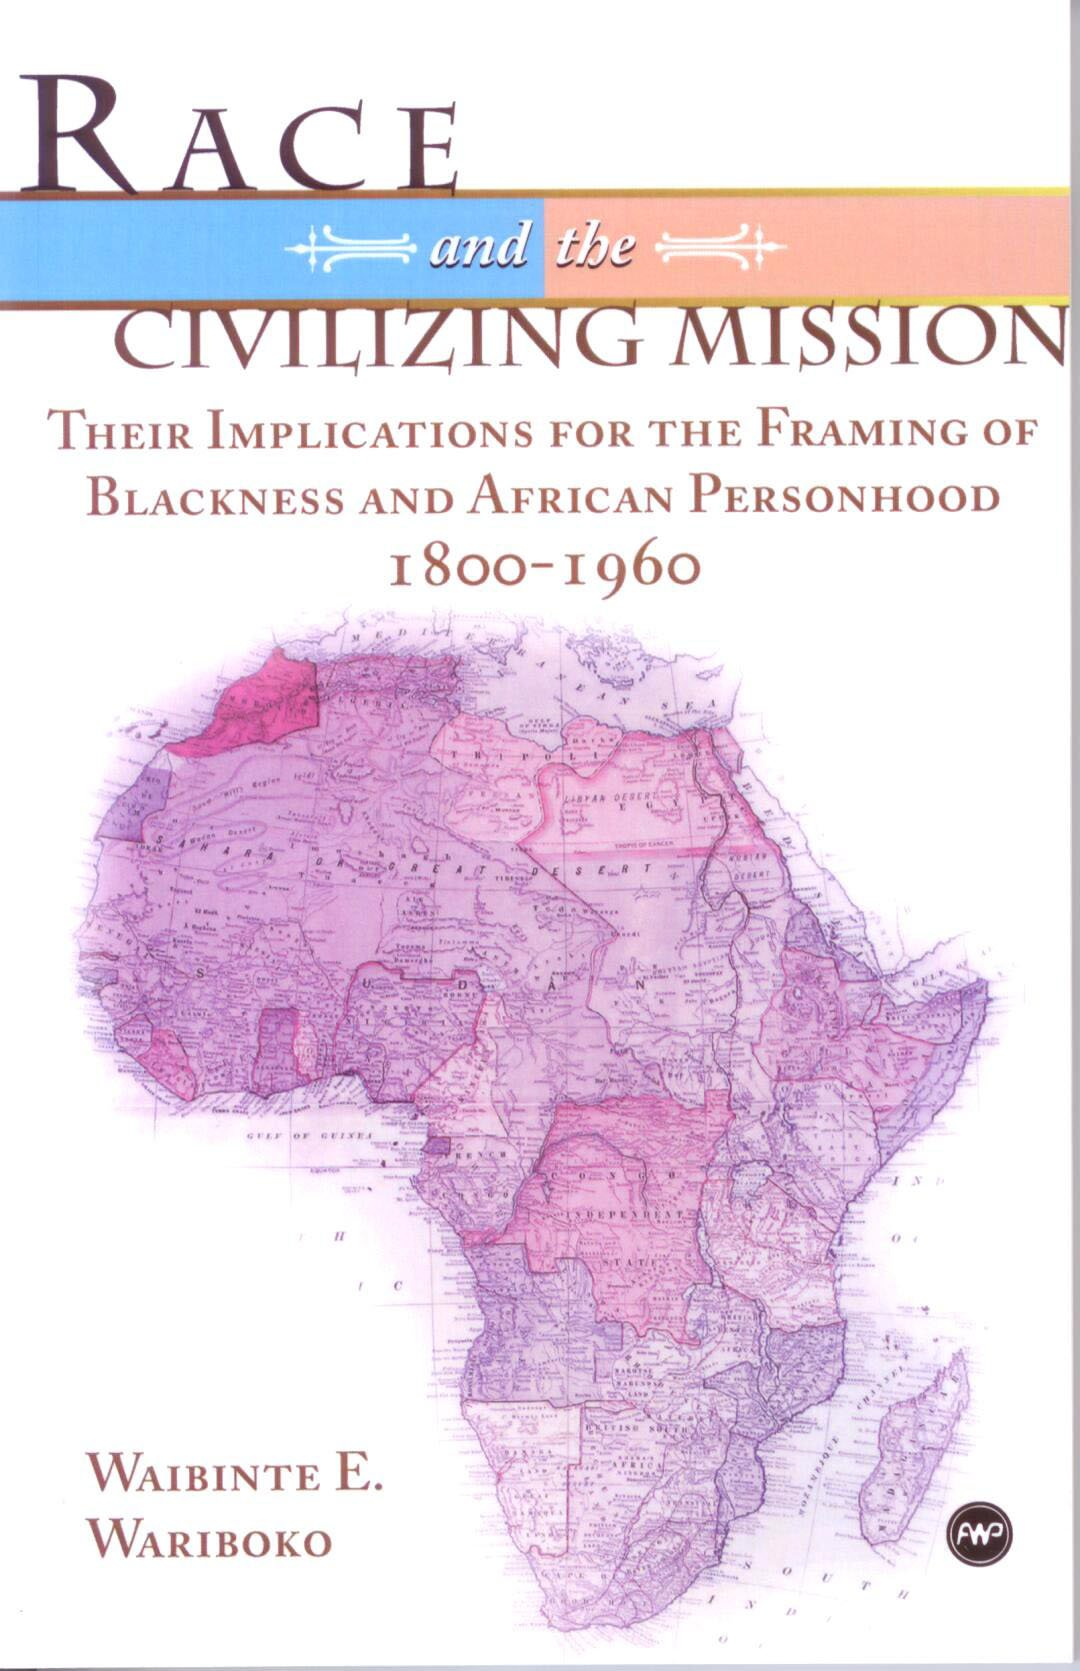 Download Race and the Civilizing Mission: Their Implications for the Framing of Blackness and African Personhood pdf